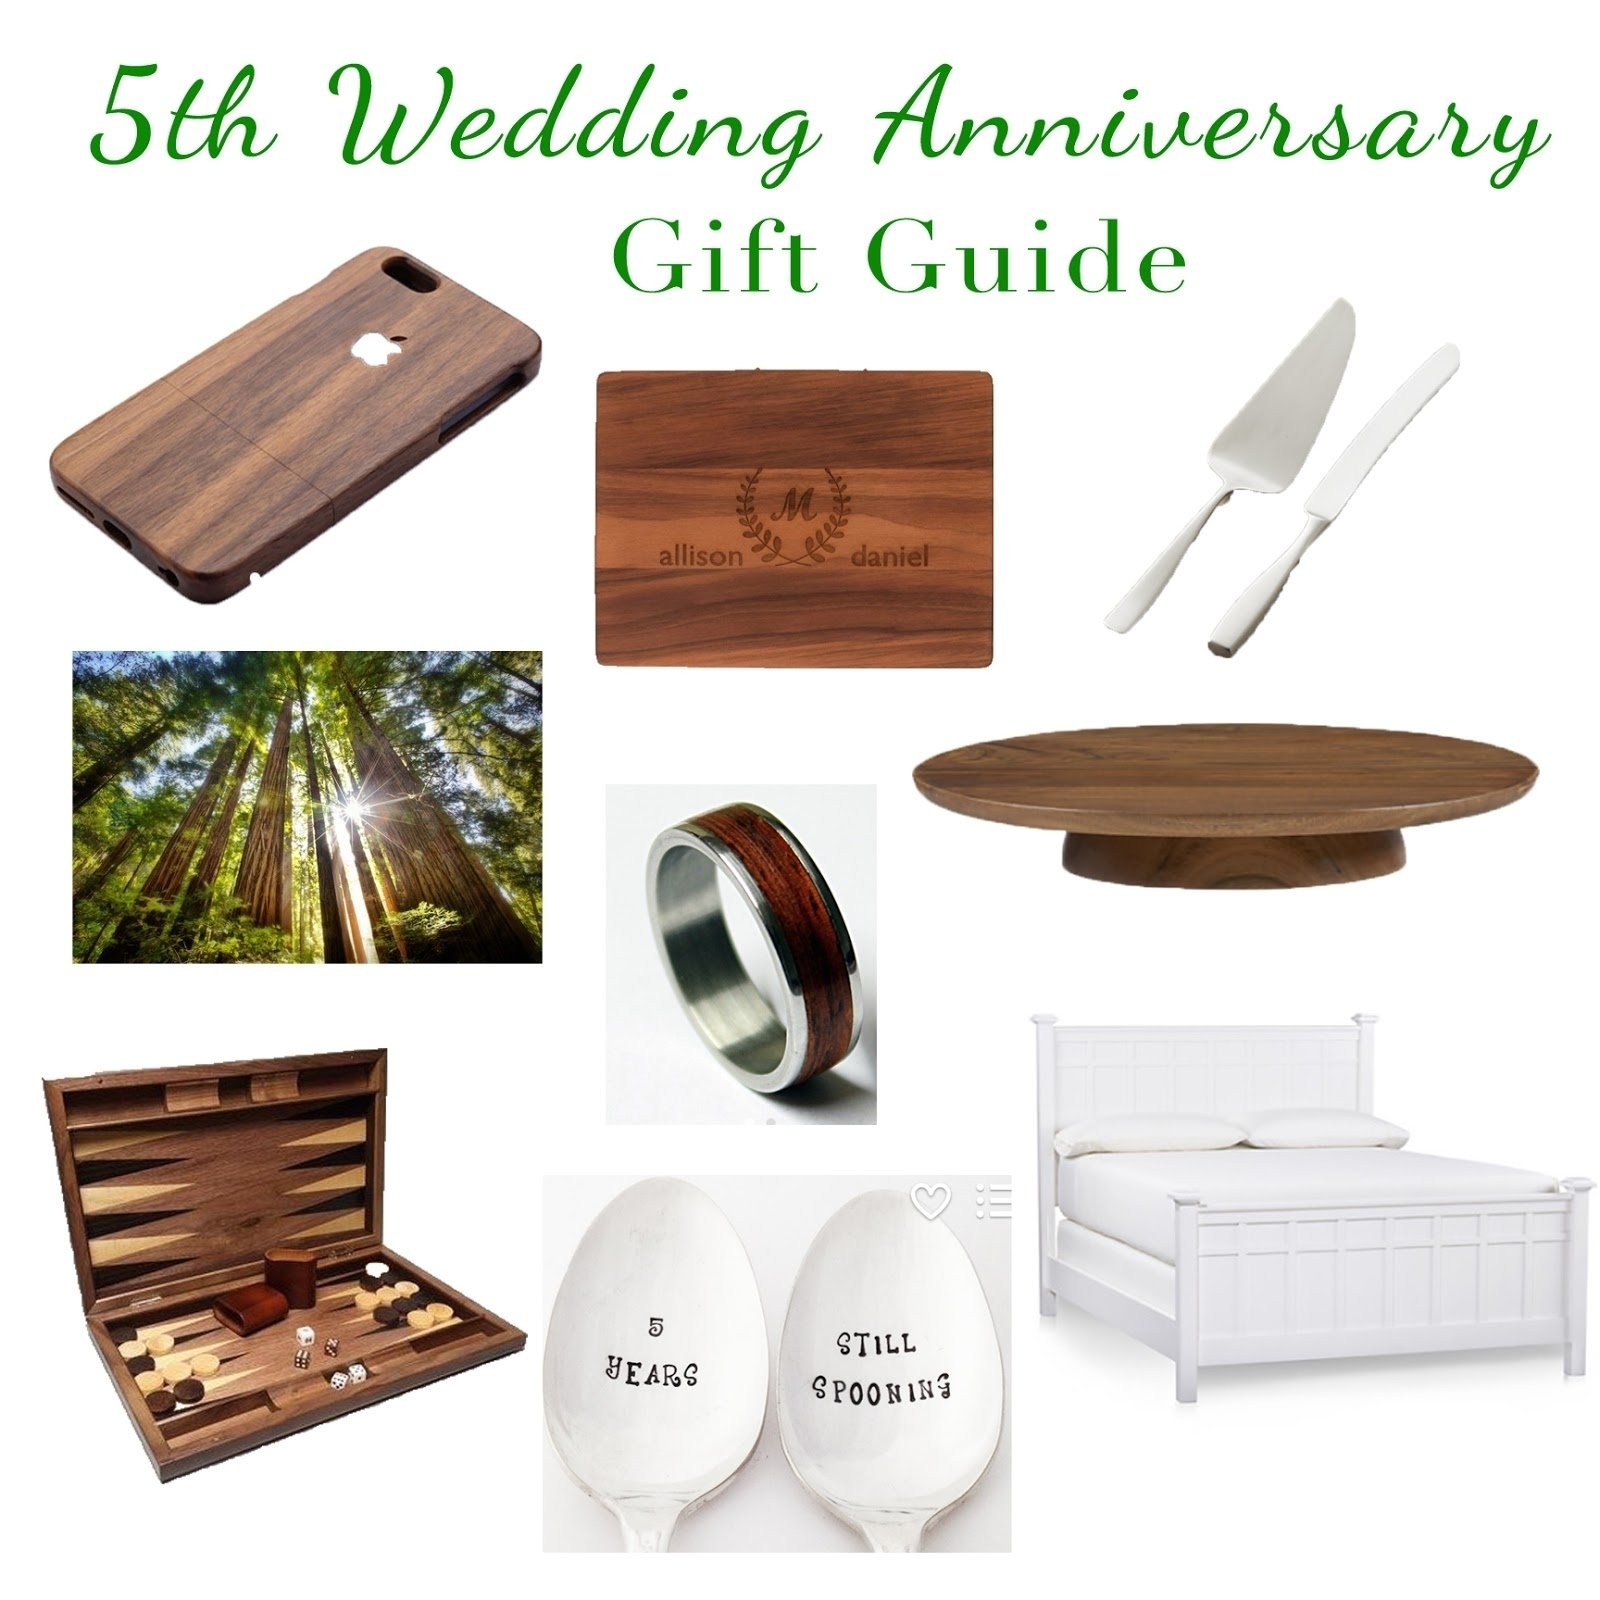 10 Ideal 5Th Wedding Anniversary Gift Ideas the adventure starts here 5th wedding anniversary gift ideas 2021